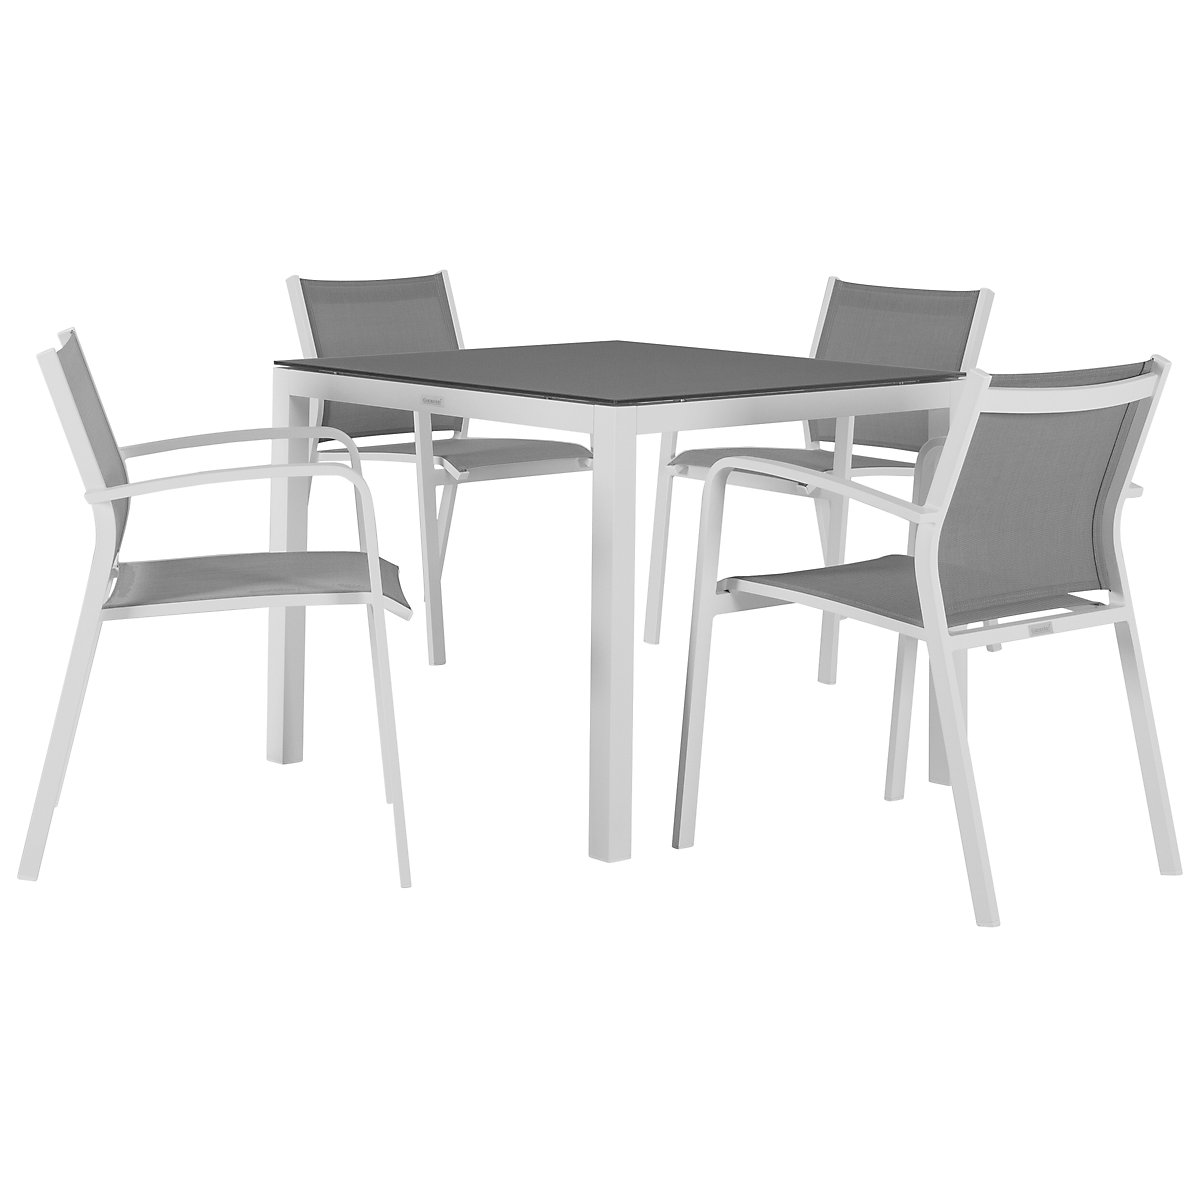 "Lisbon Gray 36"" Square Table & 4 Chairs"